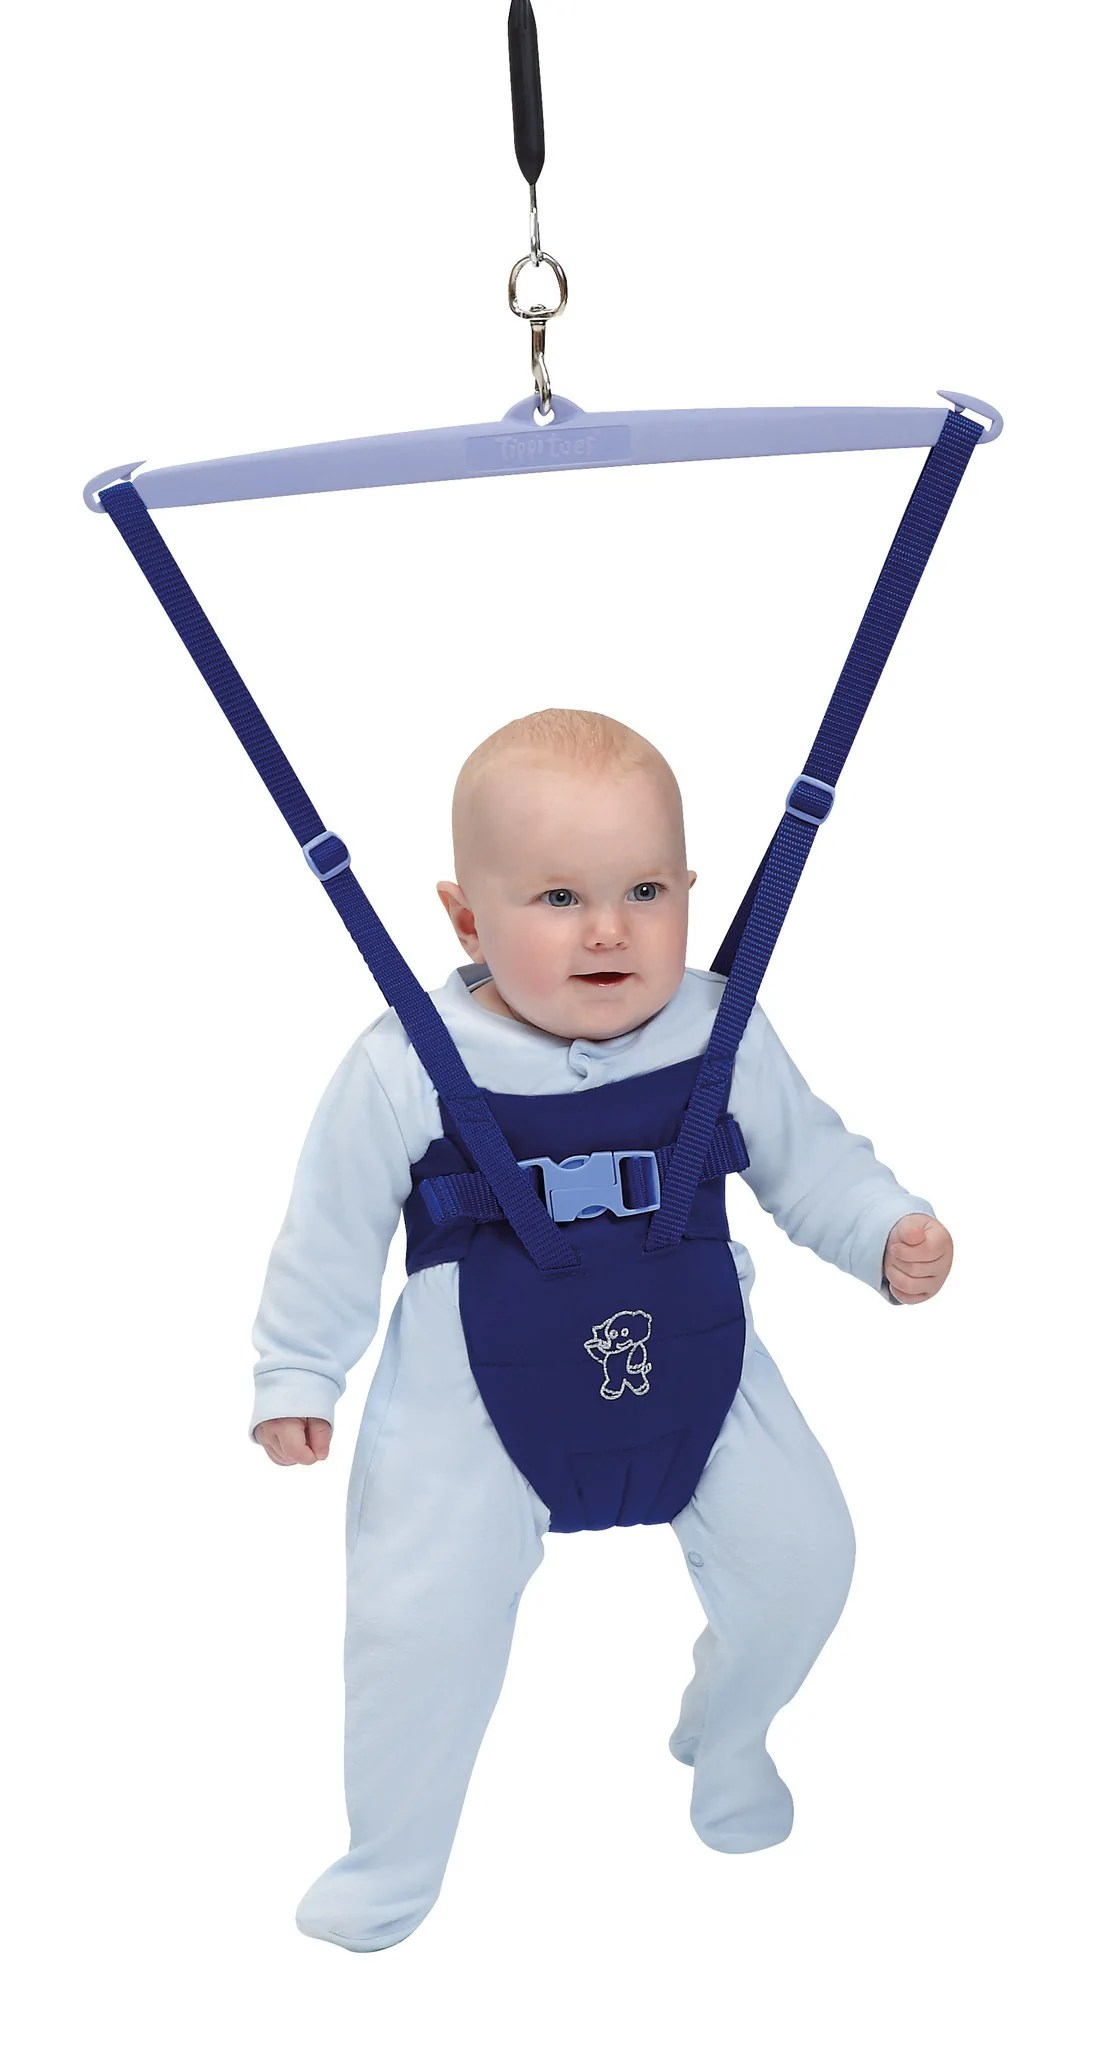 Attractive Tippitoes Baby Bouncer Blue Tippitoes Baby Bouncer Blue Tippitoes Development Baby Bouncer Swing Age Baby Bouncer Swing Seat baby Baby Bouncer Swing